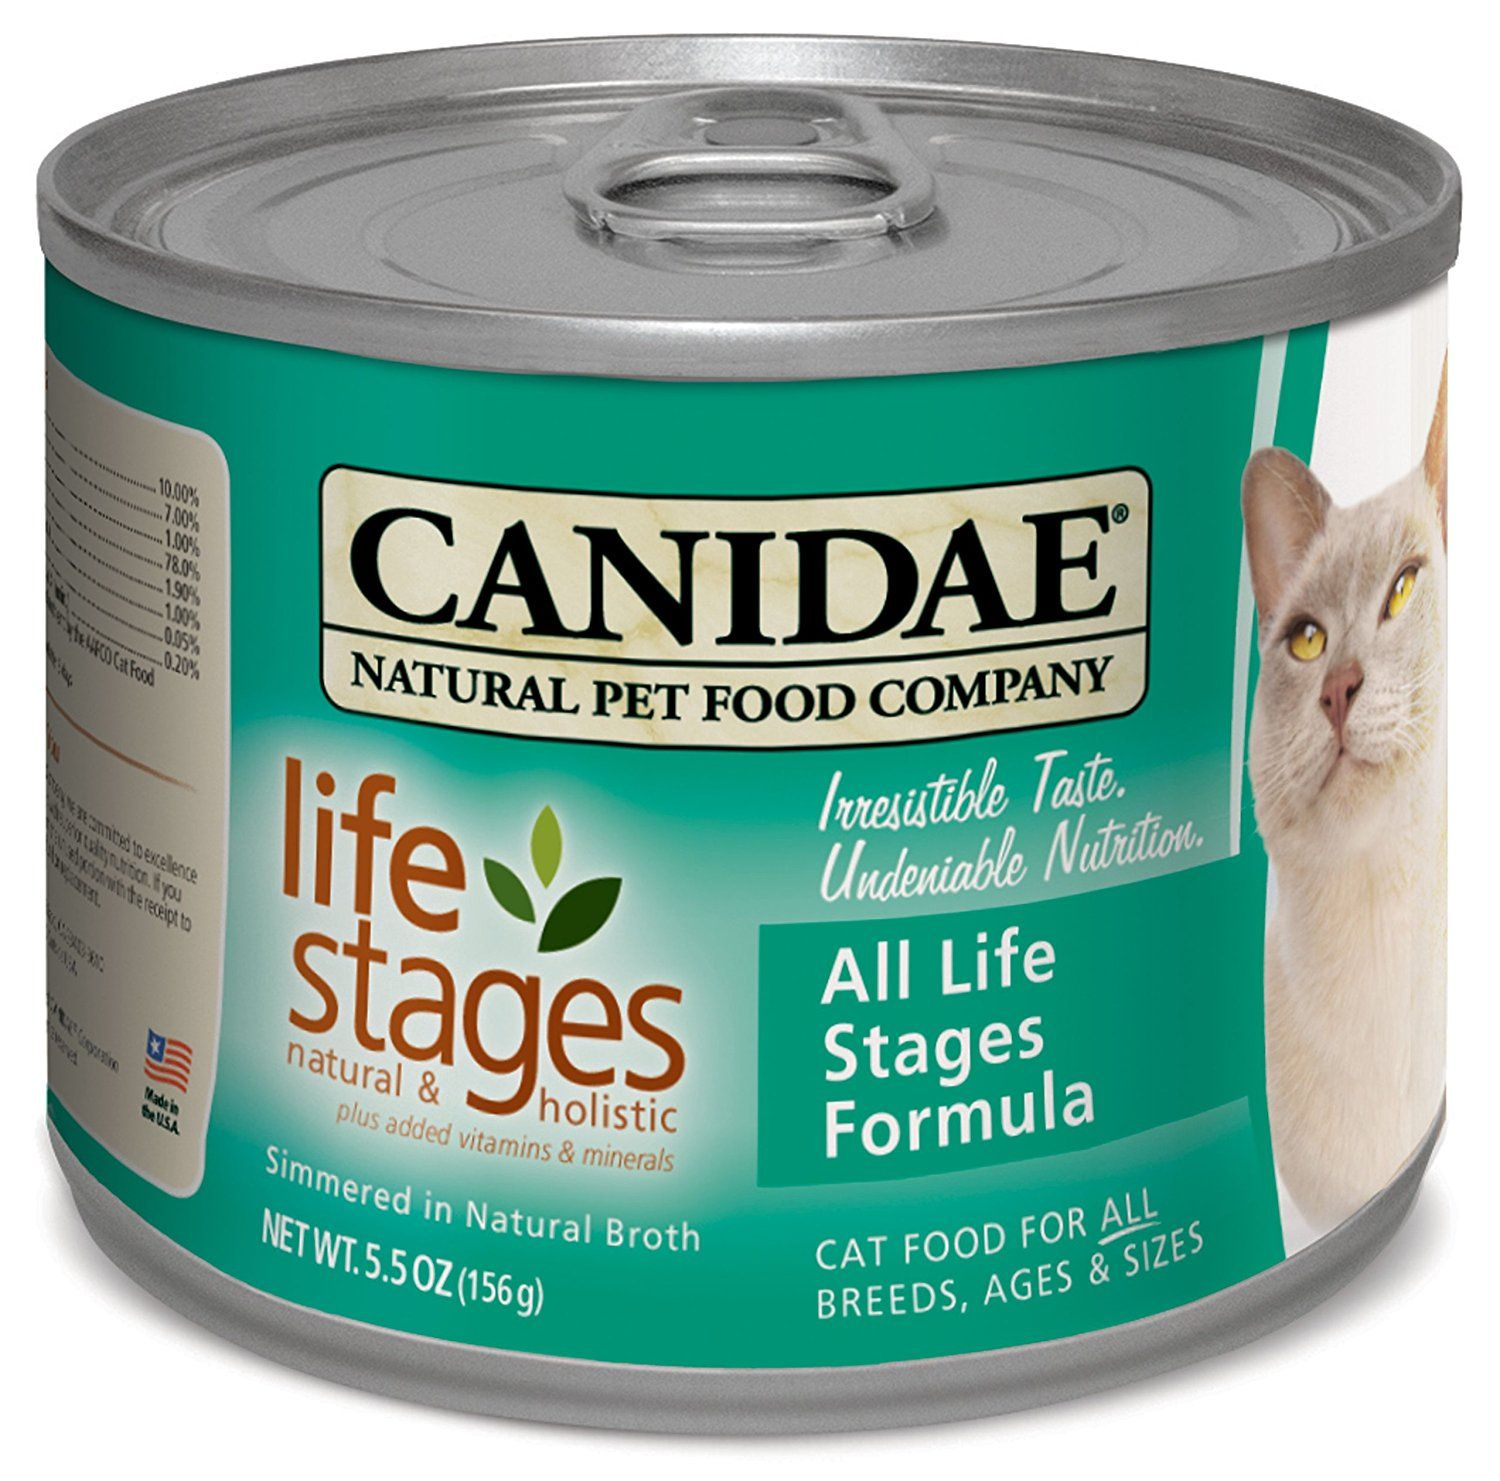 Canidae Life Stages Canned Cat Food For Kittens Adults And Seniors 12 Pack Click On The Image For Additio Canned Cat Food Canned Dog Food Cat Food Storage